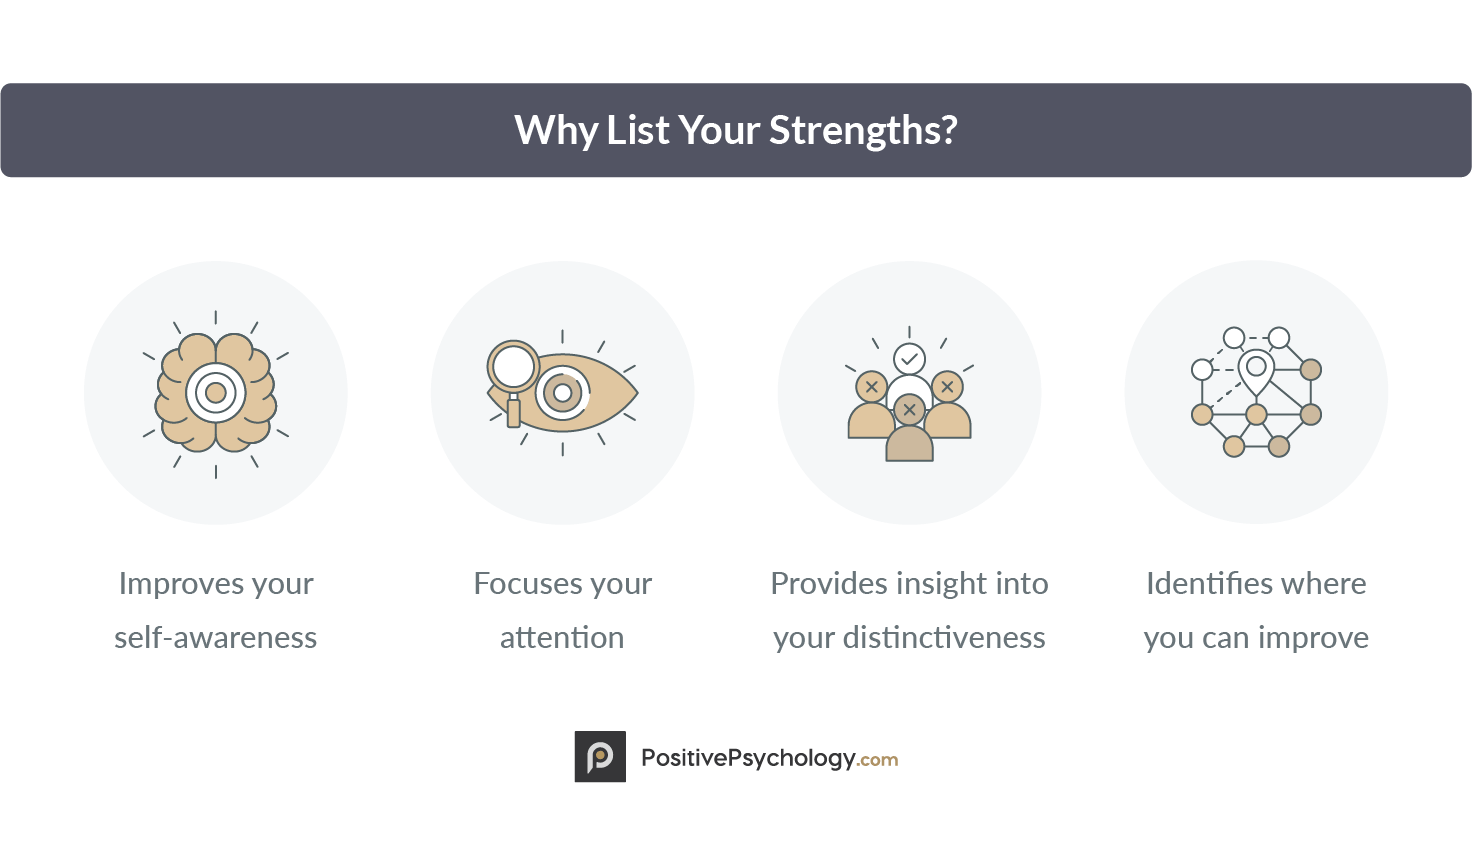 Why List Your Strengths